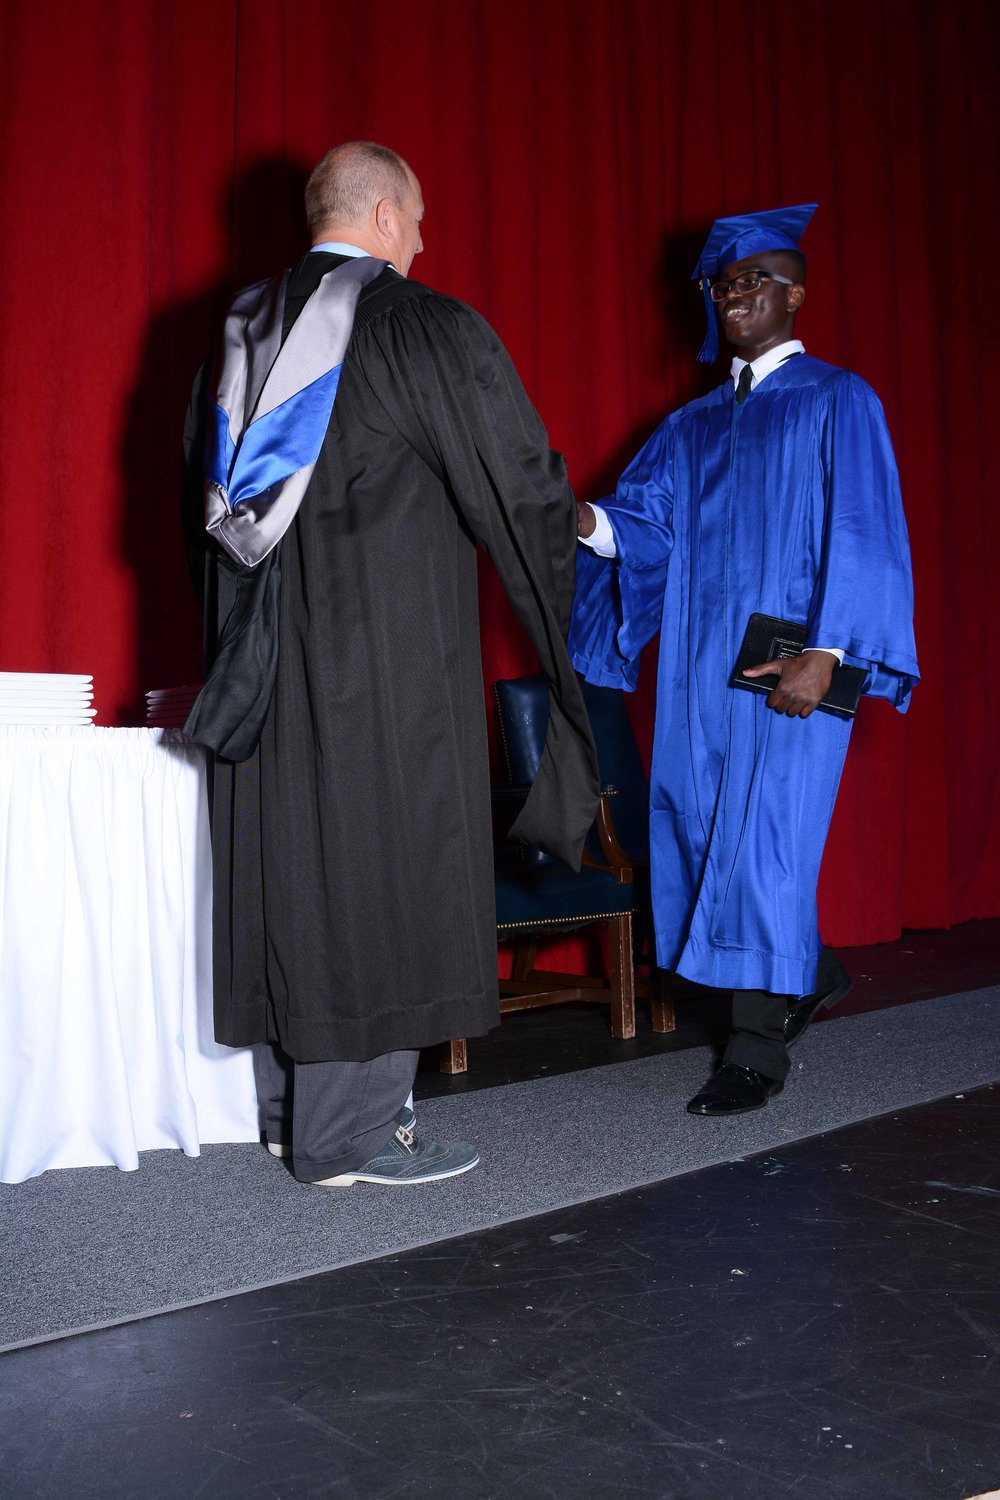 May14 Commencement152.jpg